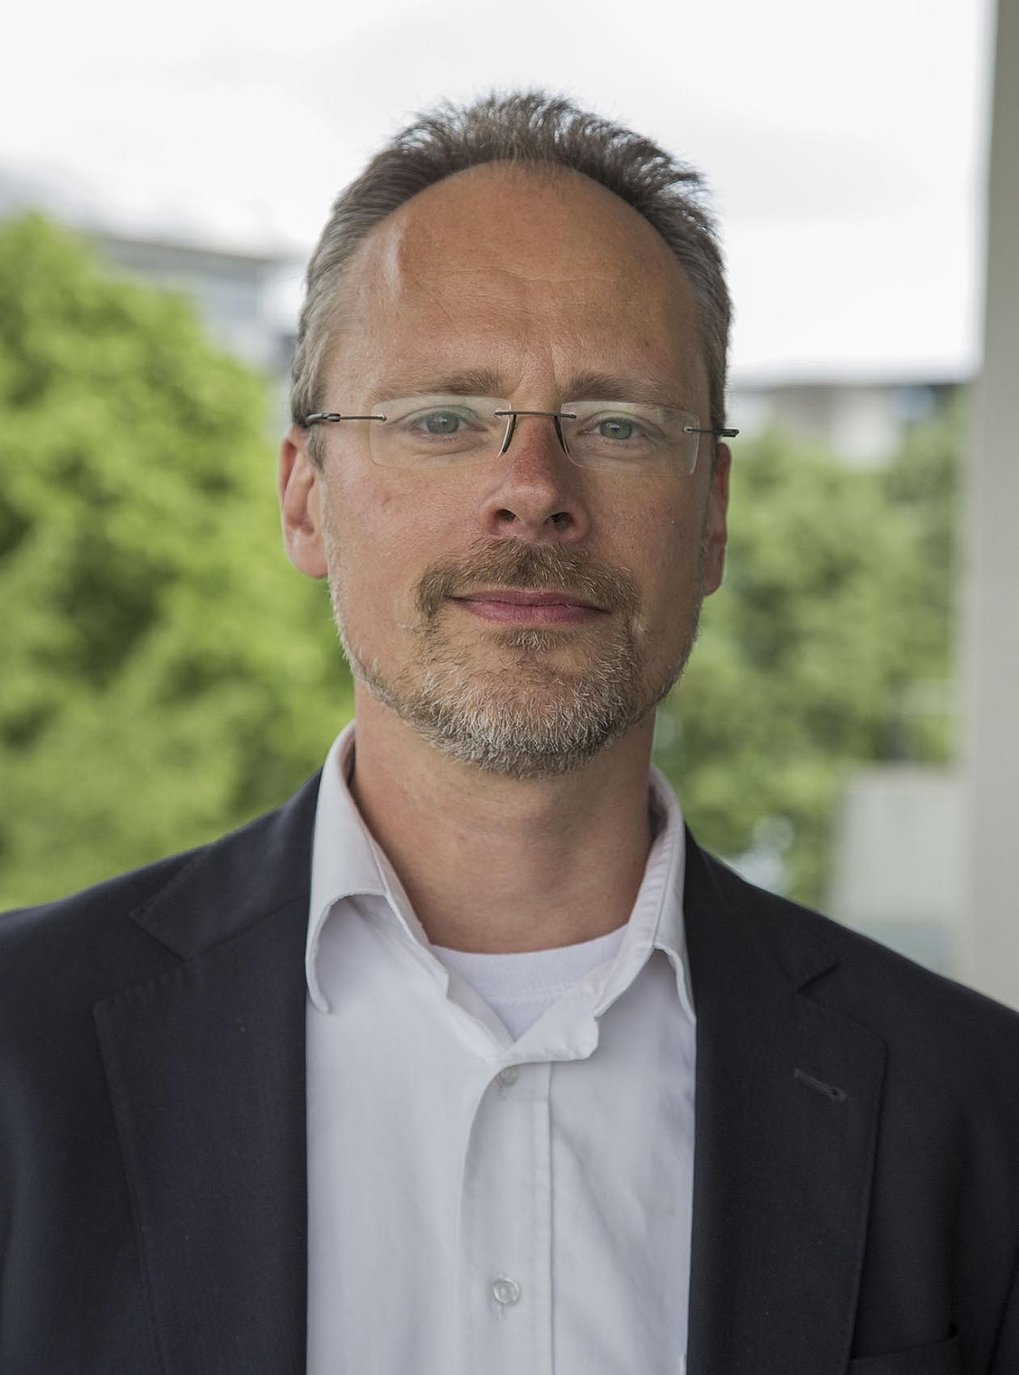 Prof. Dr. Joris van Slageren<br />Institute of Physical Chemistry, University of Stuttgart <br /><br />Modern Magnetic Systems - Molecular Nanomagnetism and Advanced Spectroscopy